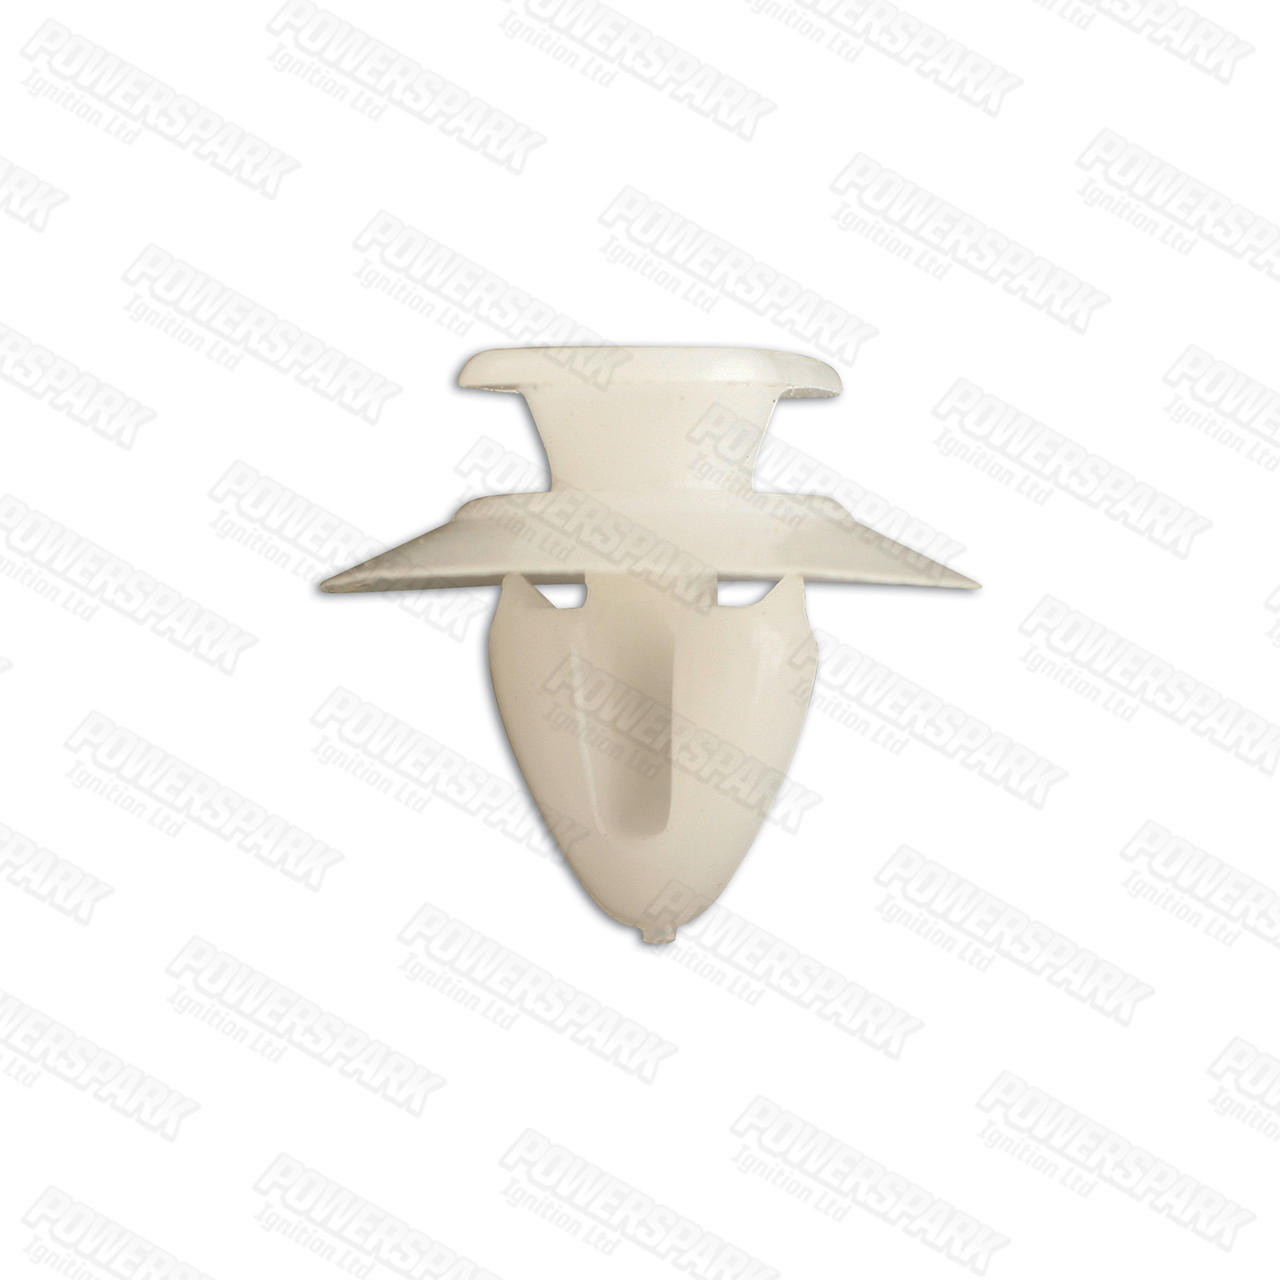 Laser Classic Triumph Panel Clip Push Retainer for Stag Pack of 25